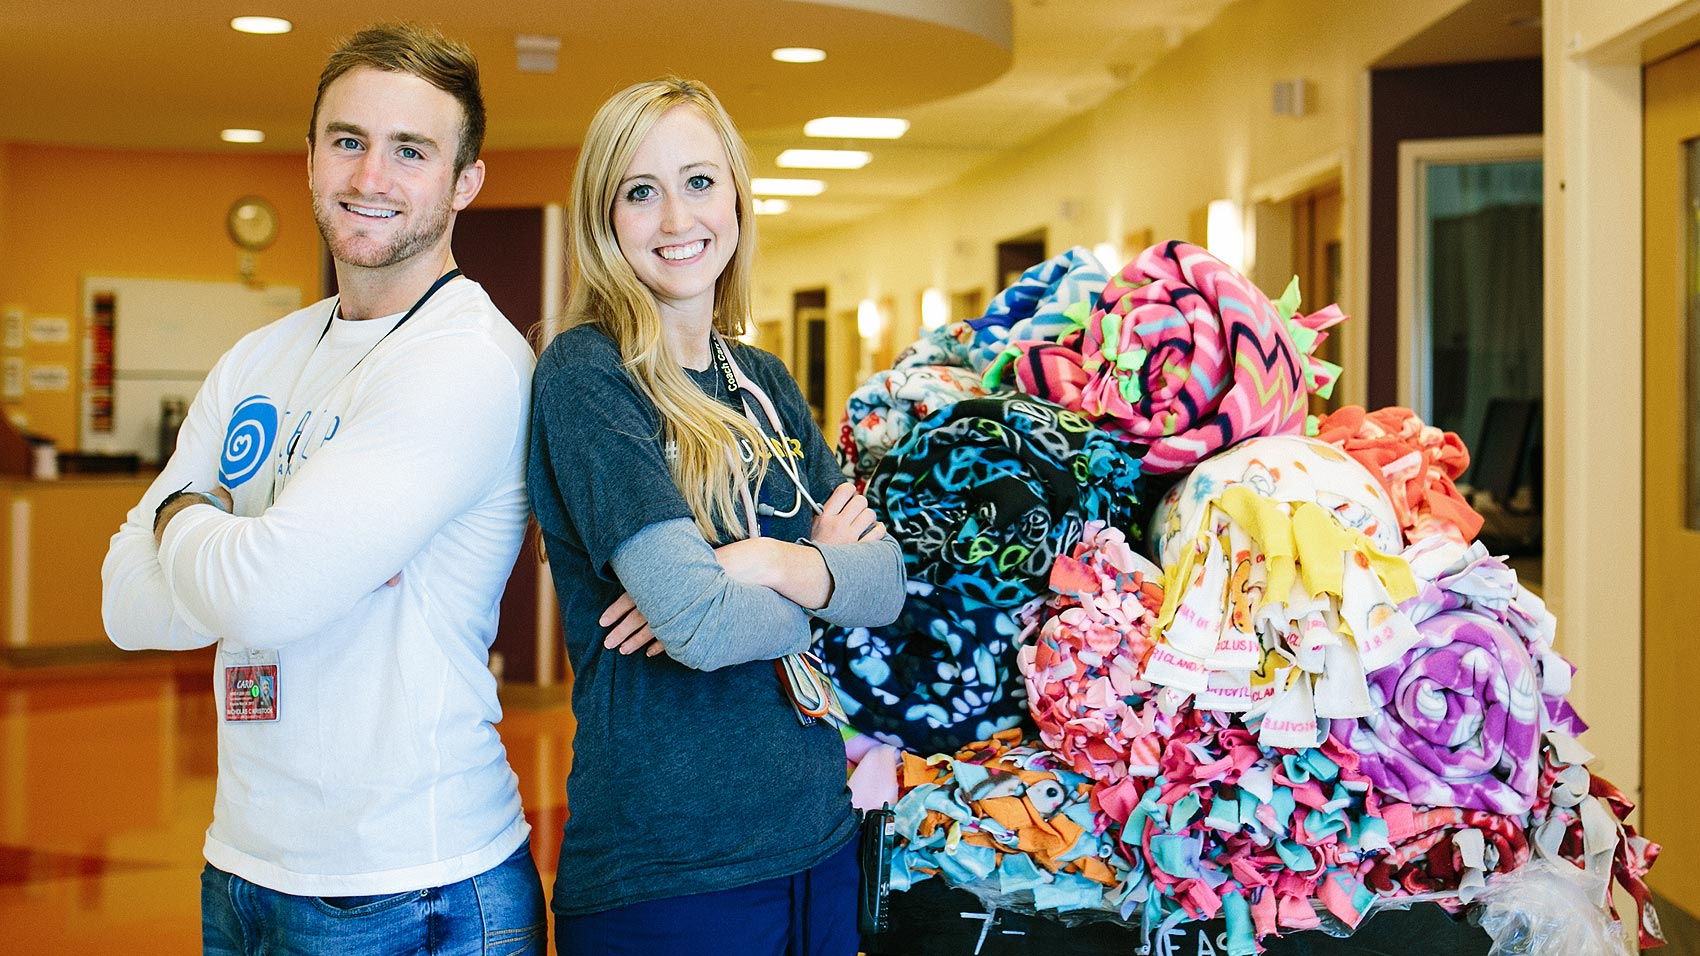 Tara and Nicholas Kristock and a pile of donated fleece blankets